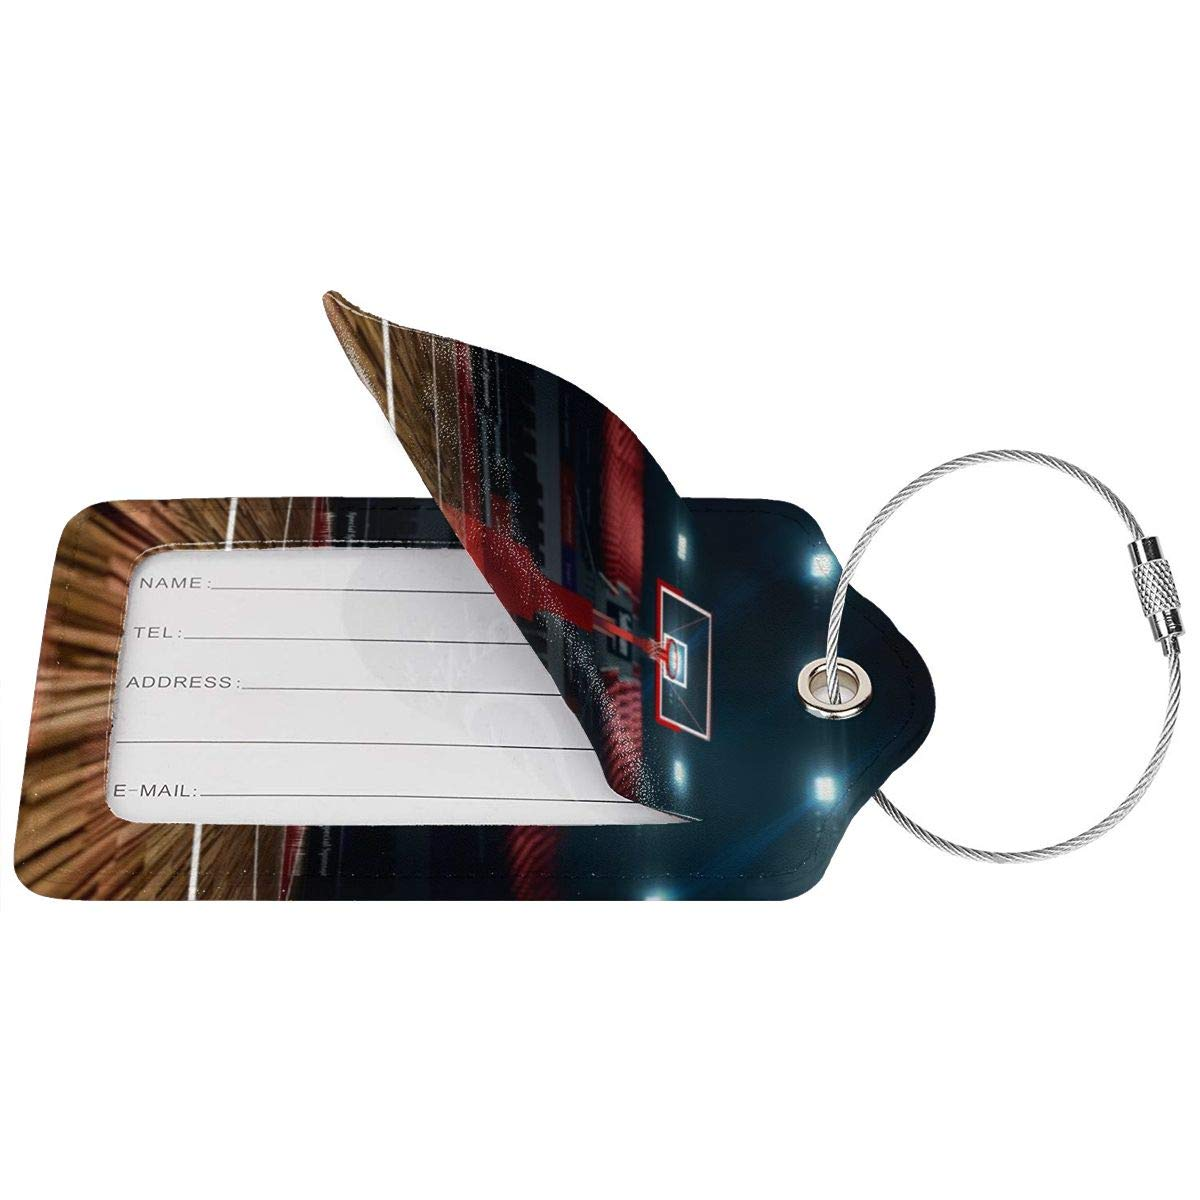 Basketball Court Travel Luggage Tags With Full Privacy Cover Leather Case And Stainless Steel Loop